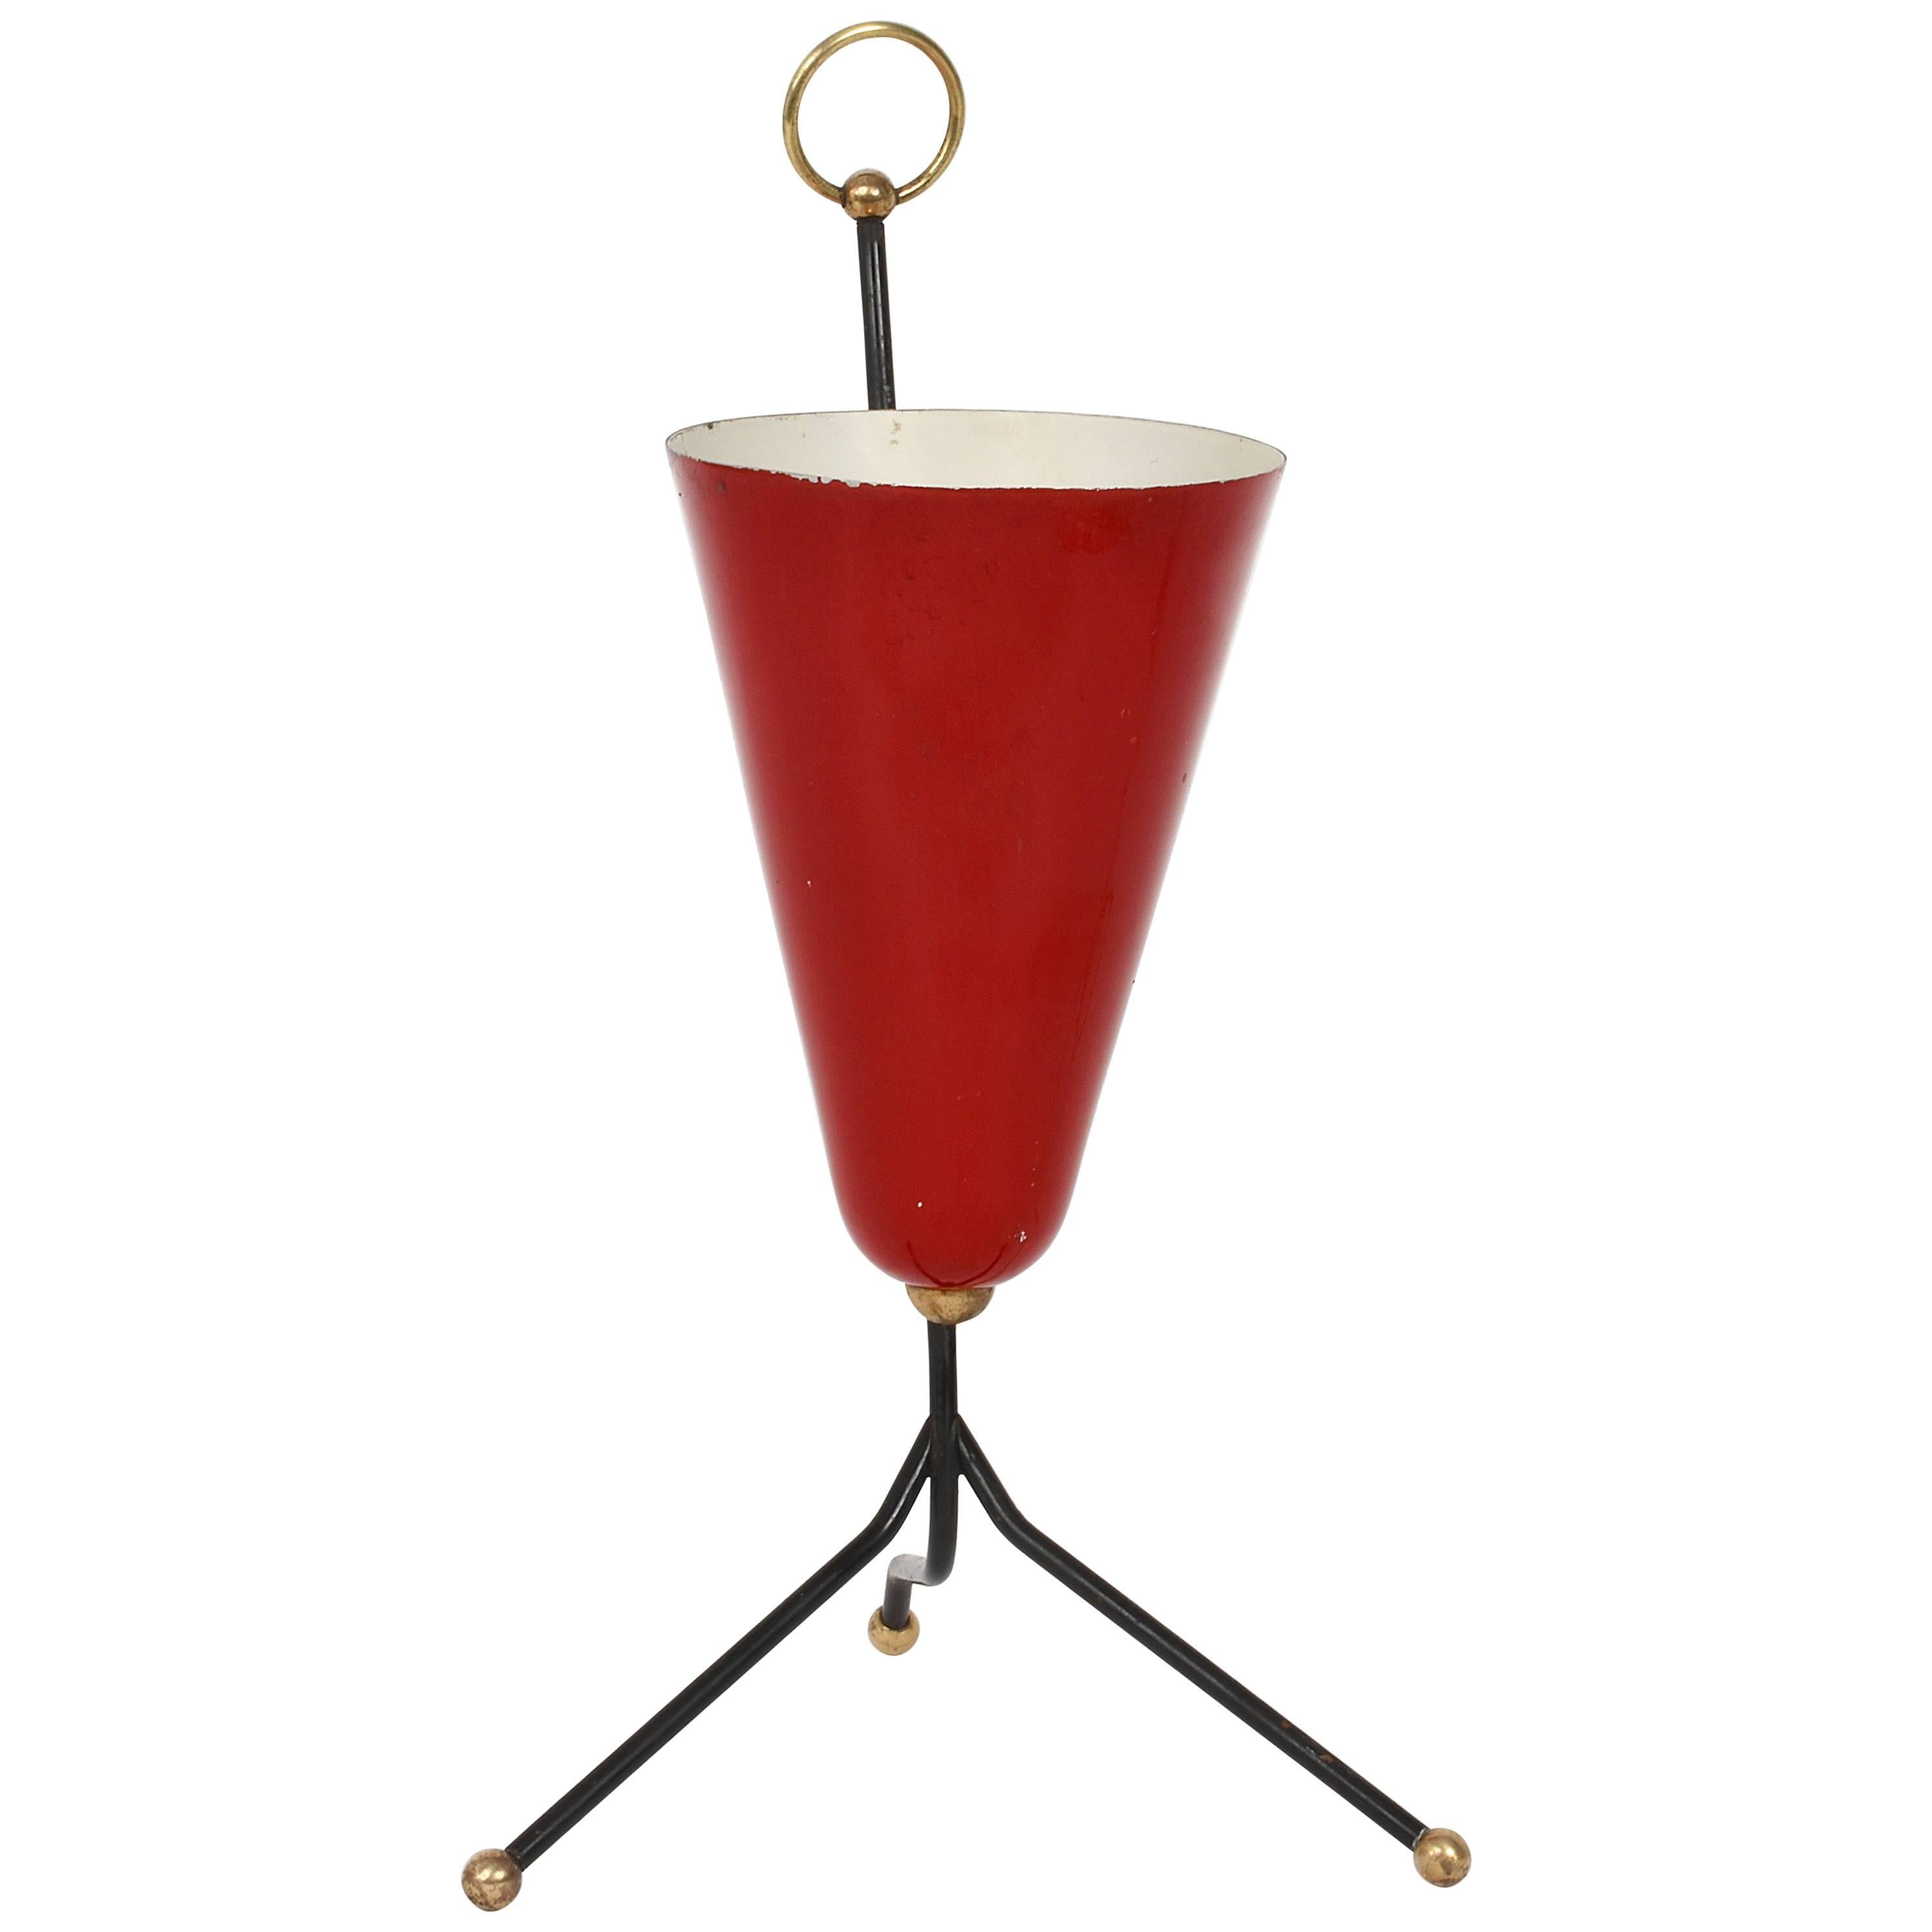 Conical Table Lamp in Red Lacquered Metal and Brass, Italy 1950s Italian Tripod